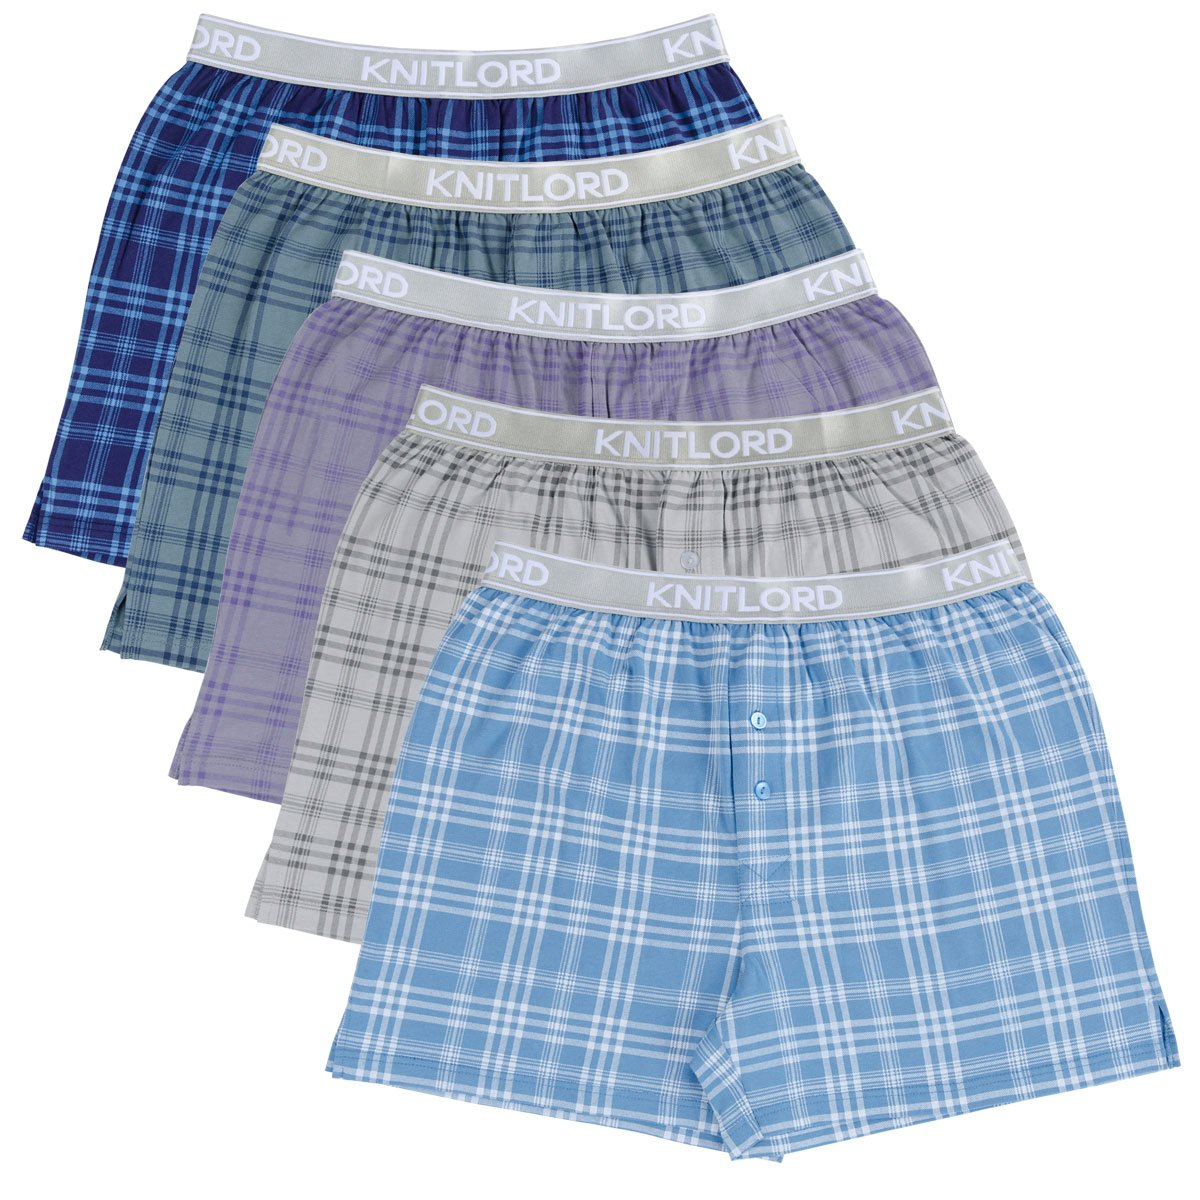 Knitlord UNDERWEAR メンズ B07897F9FT Large|Plaid Printing/ 5 Colors Plaid Printing/ 5 Colors Large